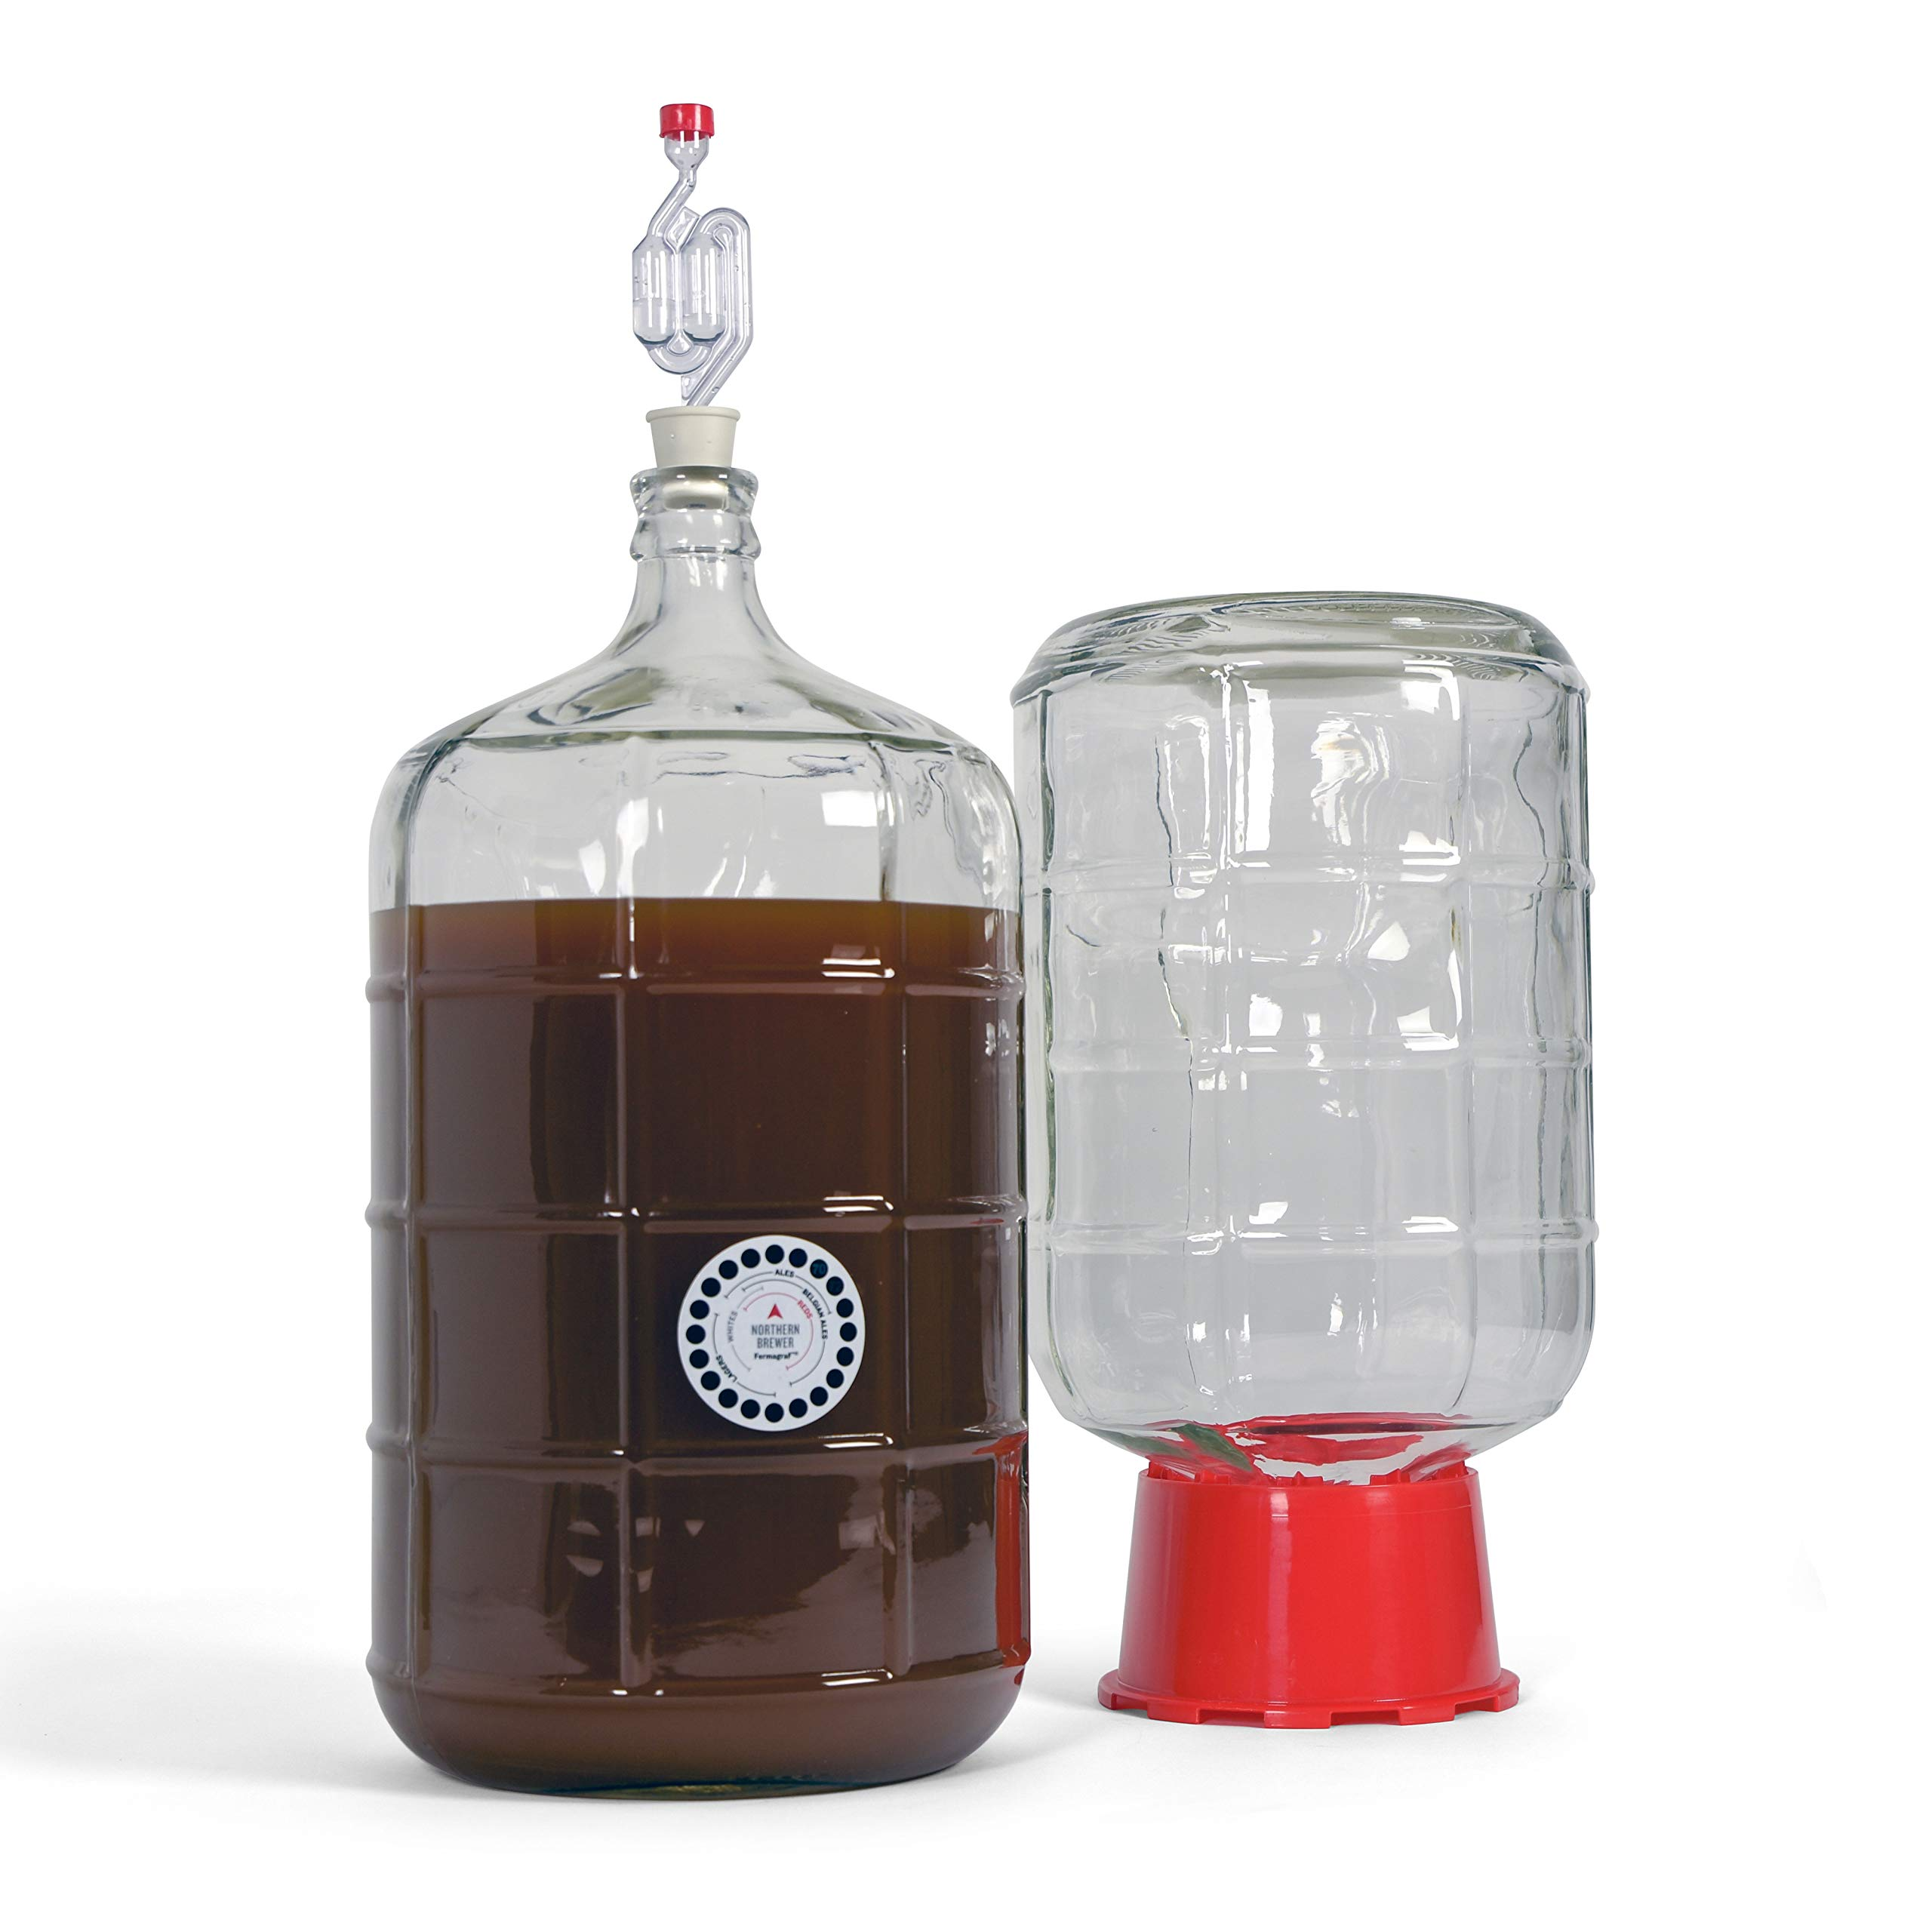 Northern Brewer Deluxe Home Brewing Equipment Starter Kit - Fresh Squished IPA Beer Recipe Kit - Glass Carboys Fermenter with Equipment For Making 5 Gallons Of Homemade Beer by Northern Brewer (Image #3)